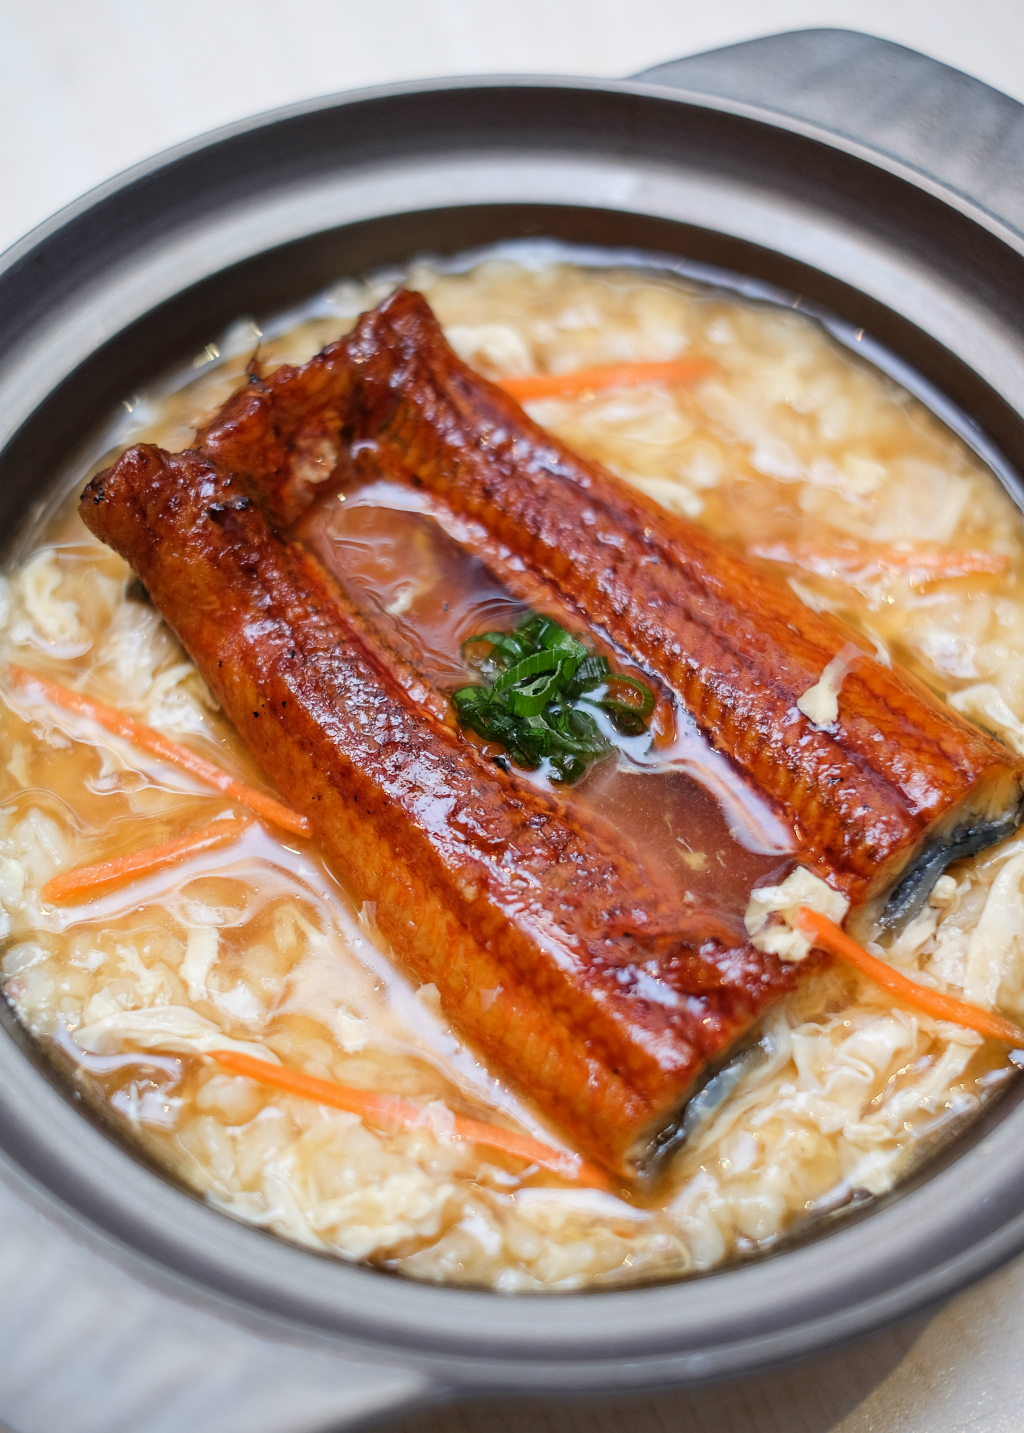 Xin Wang Hong Kong Café: Eel Hot Pot Porridge